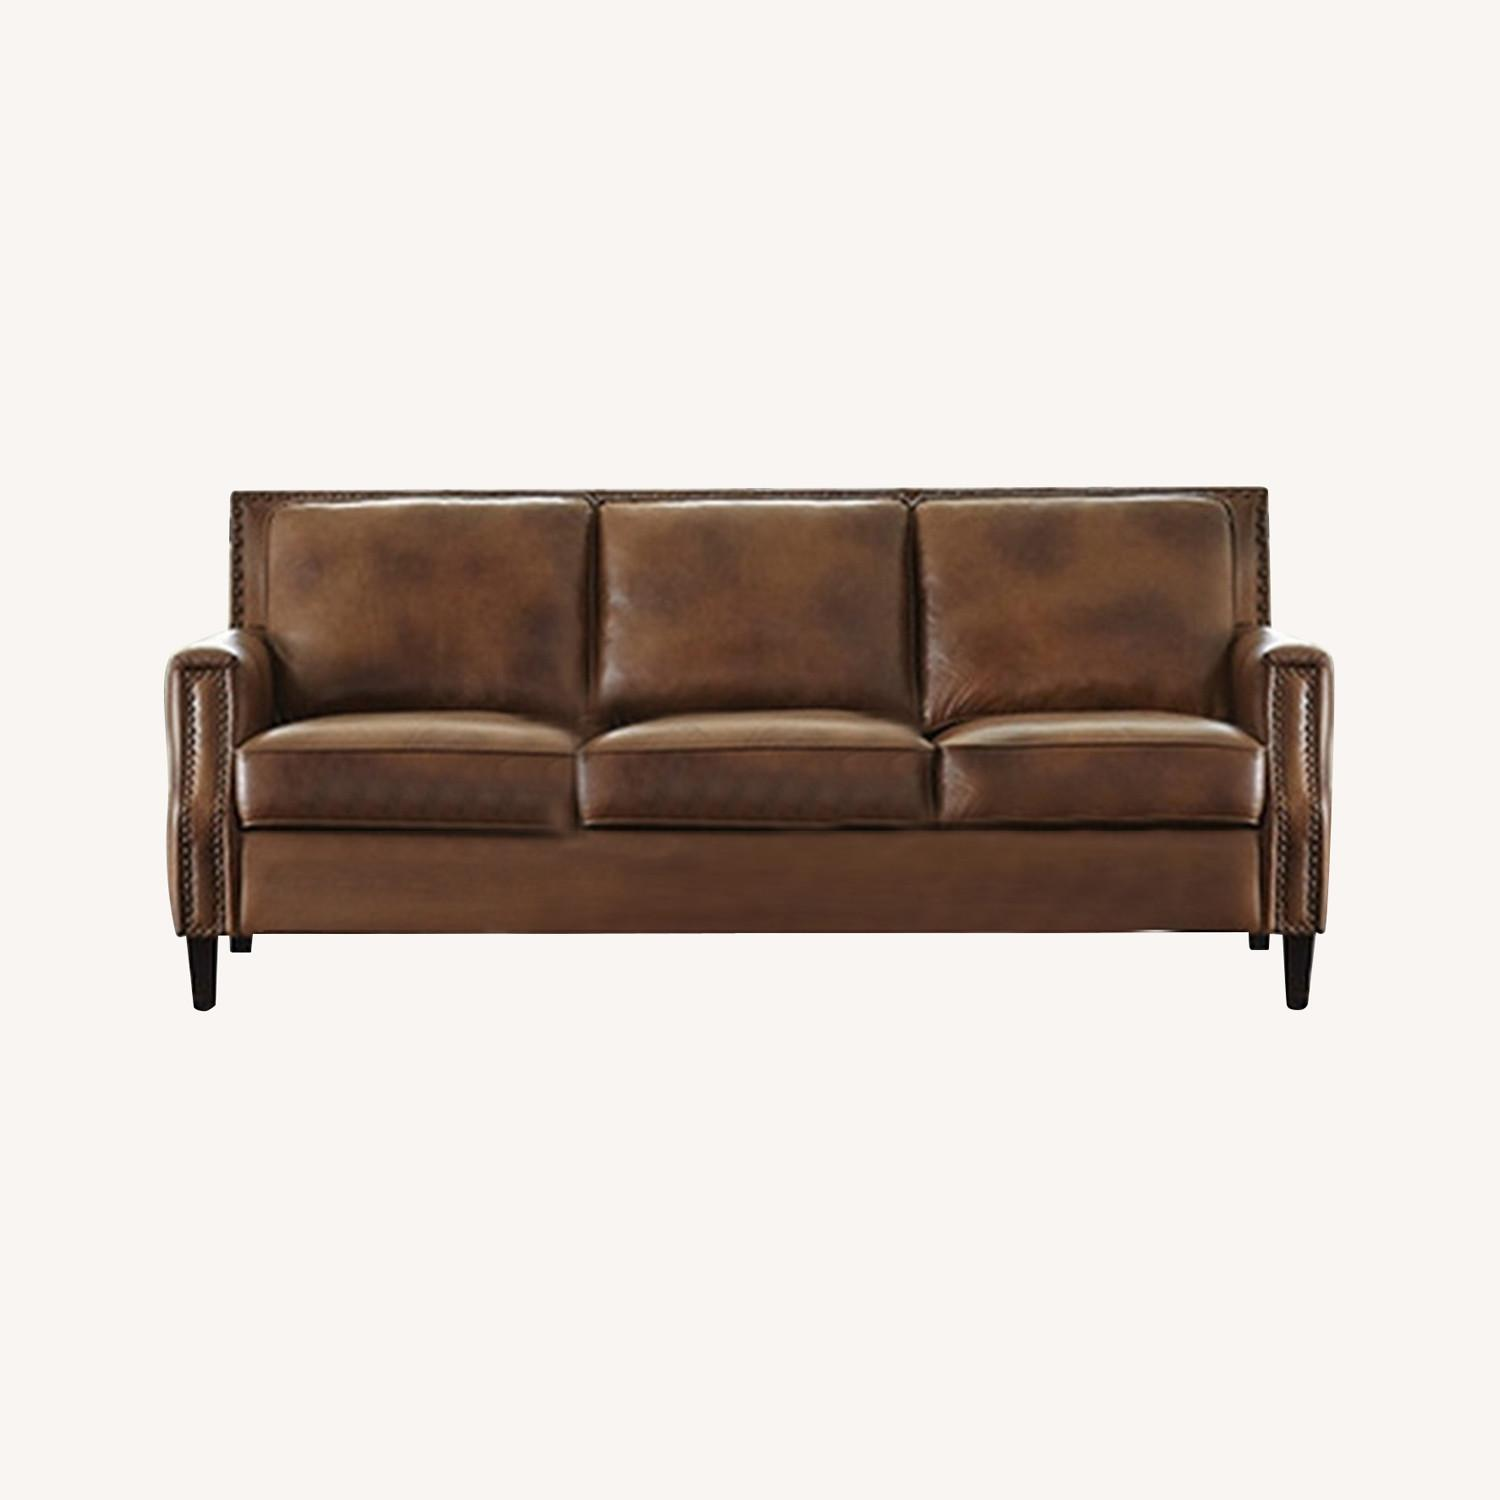 Sofa In Brown Leather Upholstery - image-3